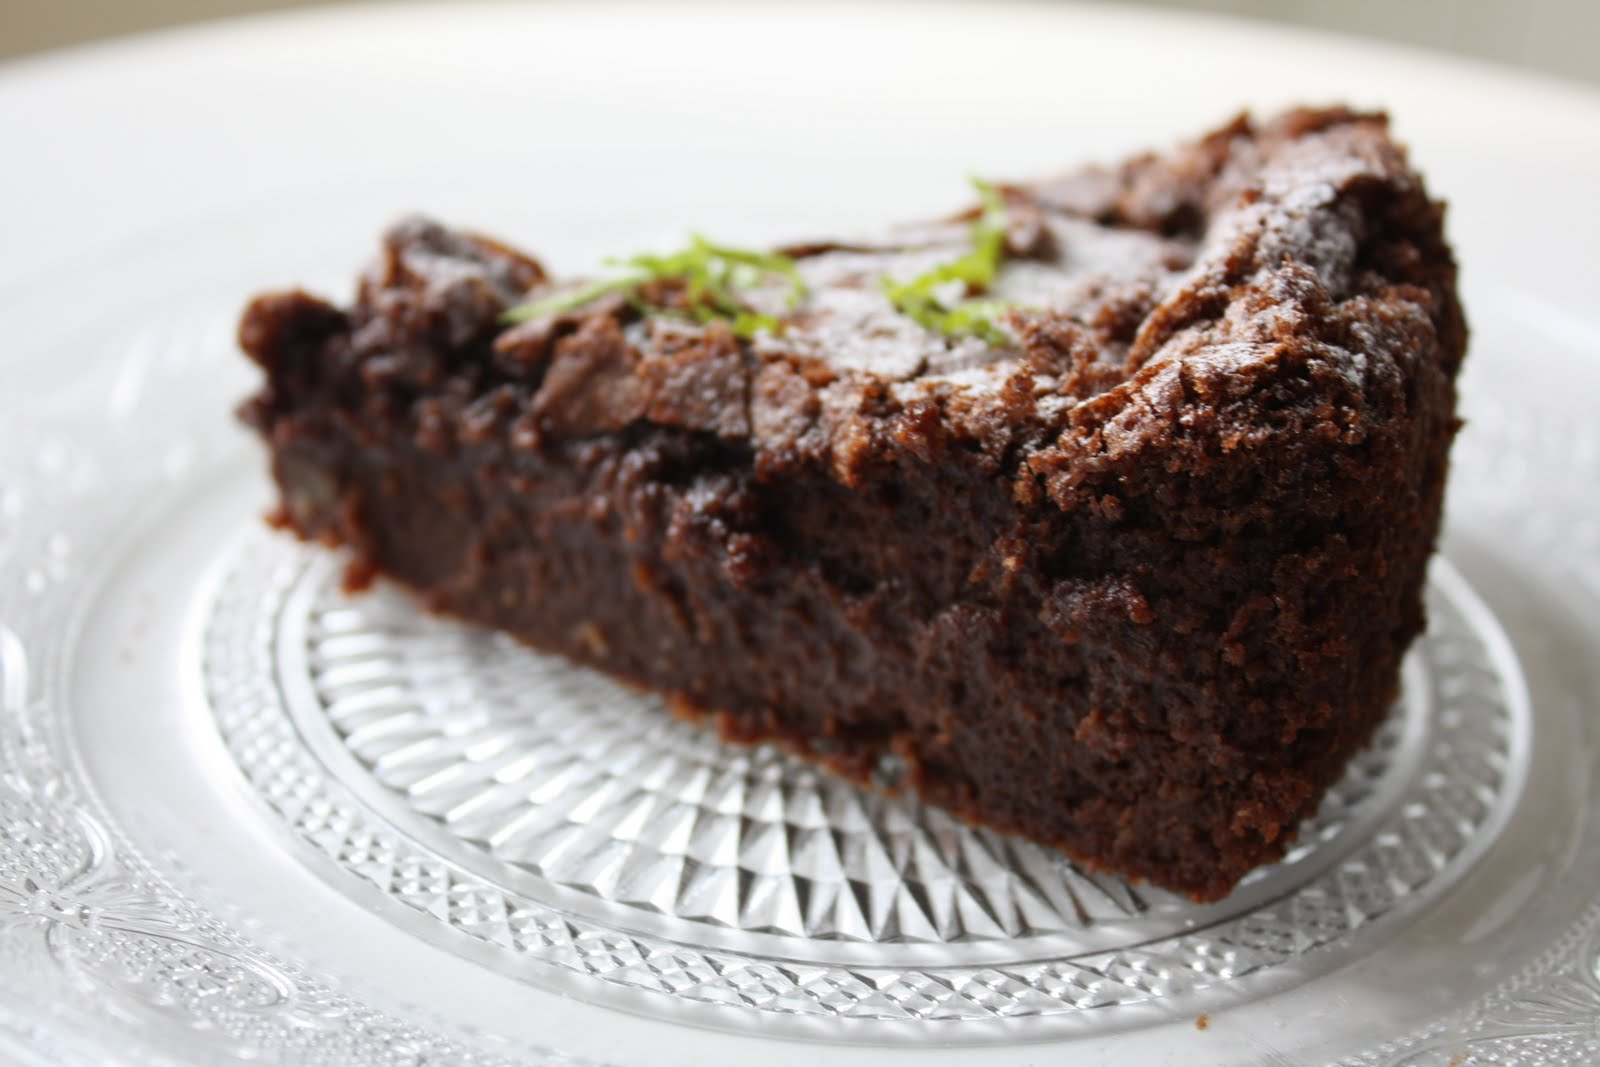 What I Baked This Weekend Flourless Chocolate Lime Cake